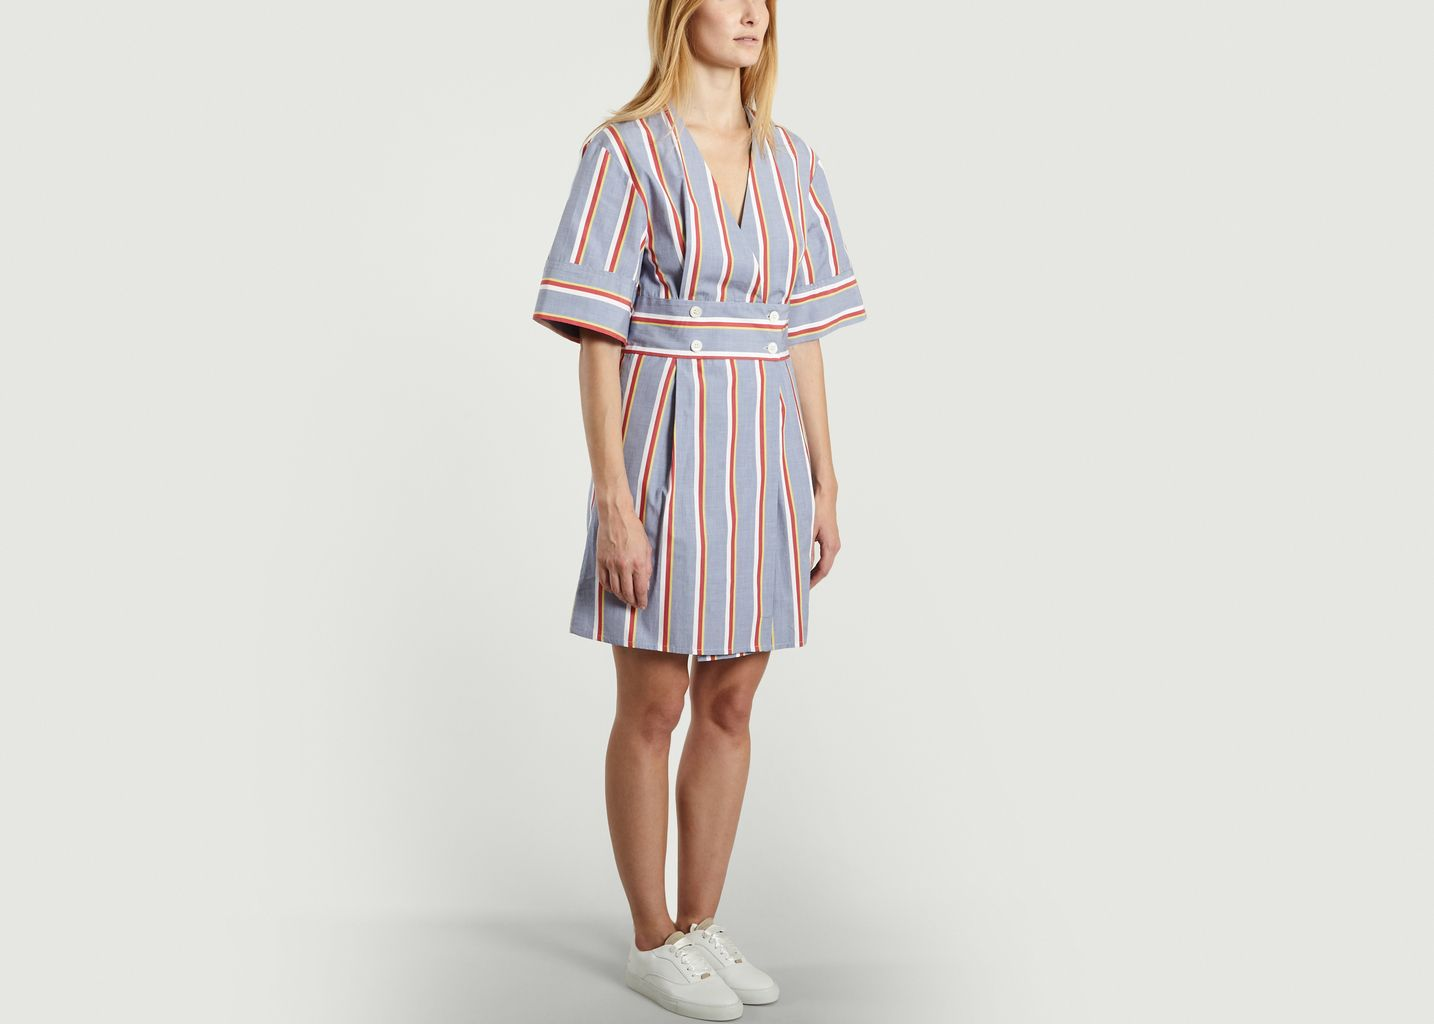 Sally Striped Dress - Maison Kitsuné